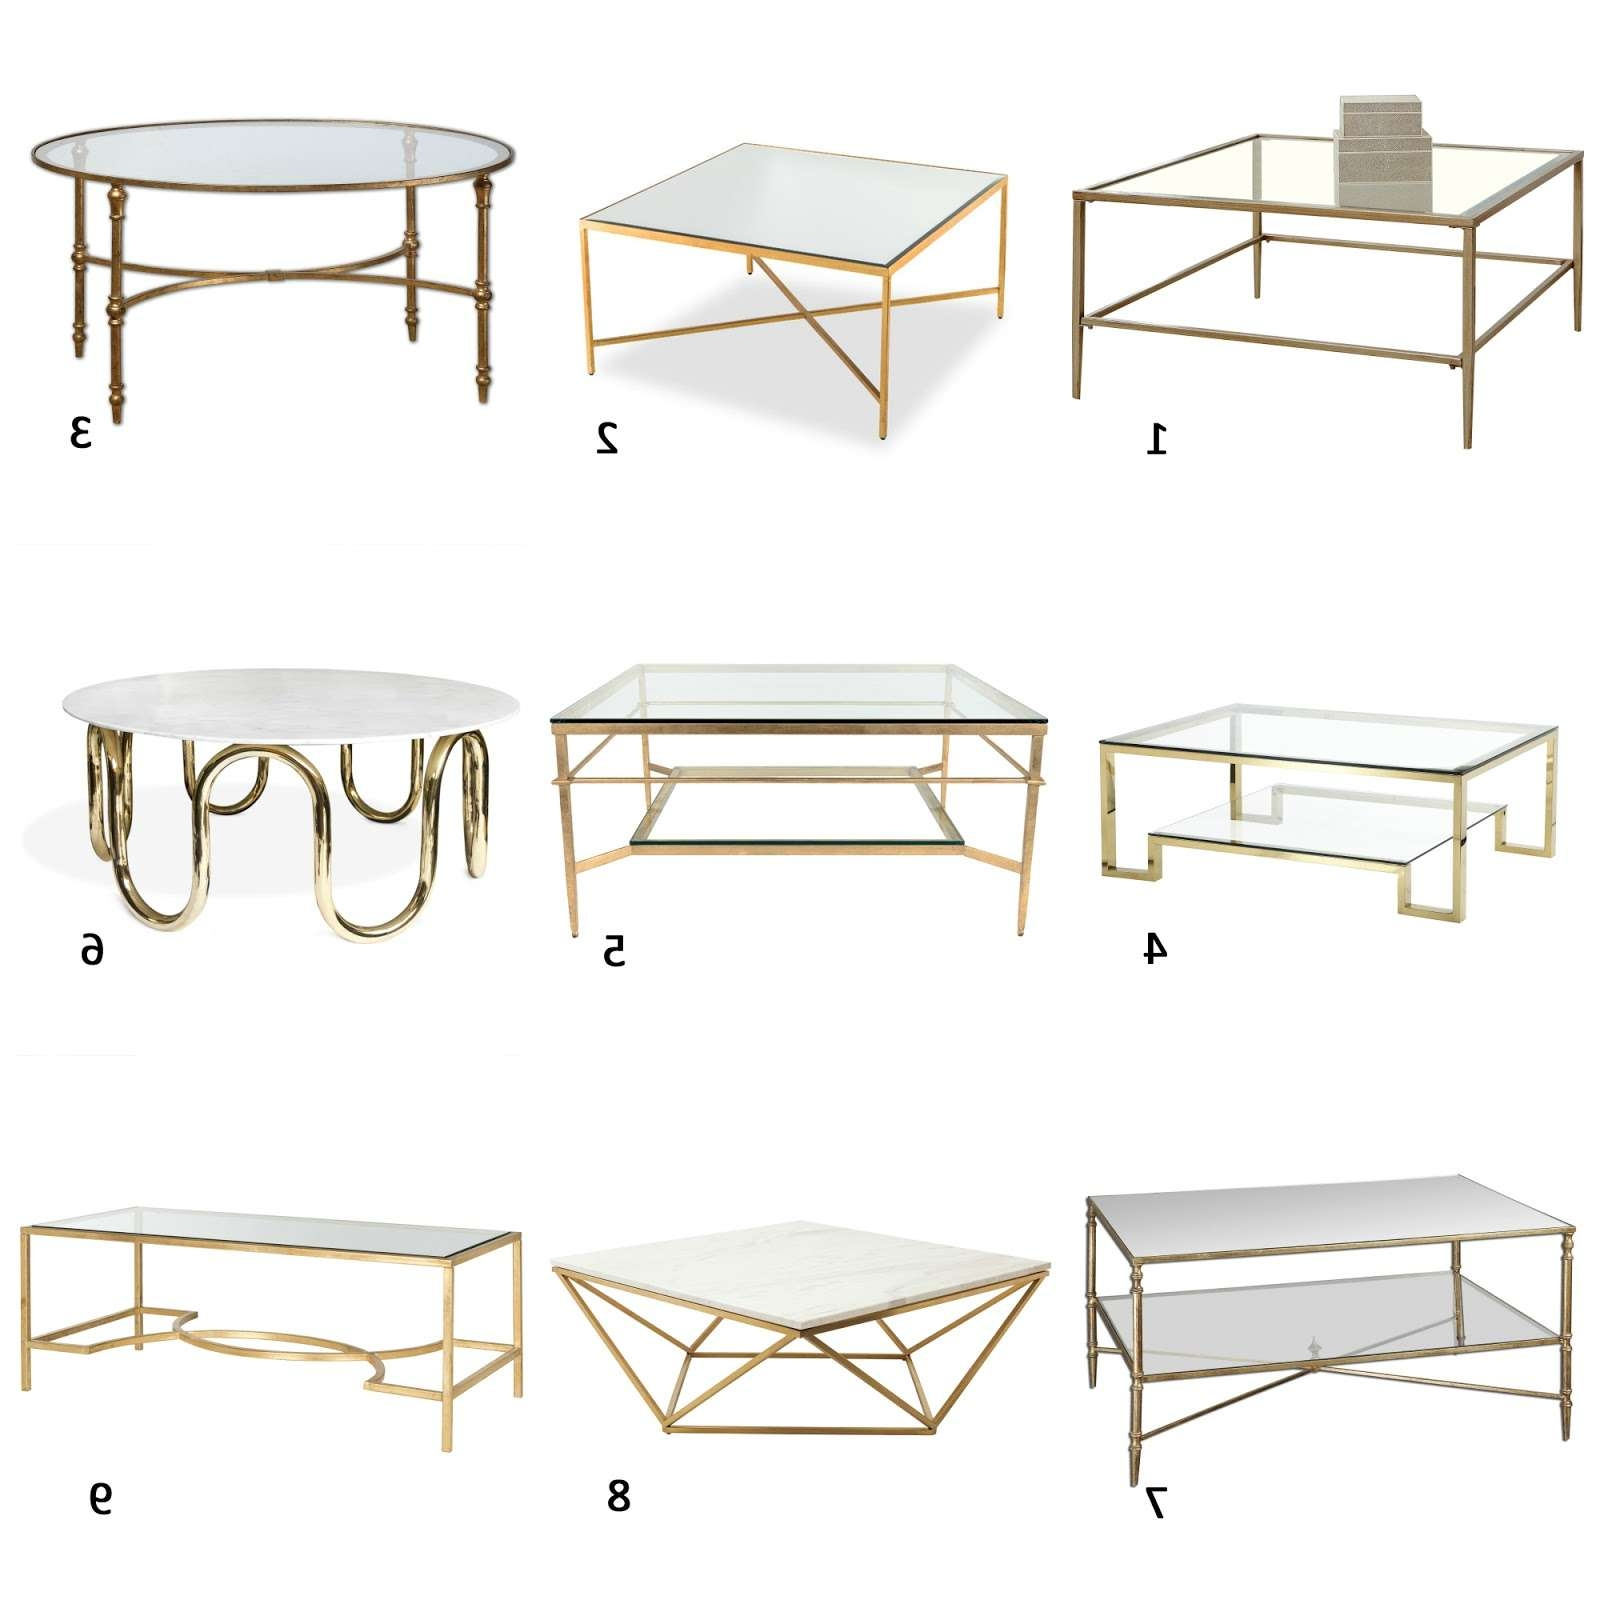 Famous Glass Gold Coffee Tables In Am Dolce Vita: A Roundup Of Brass And Glass Coffee Tables (View 18 of 20)